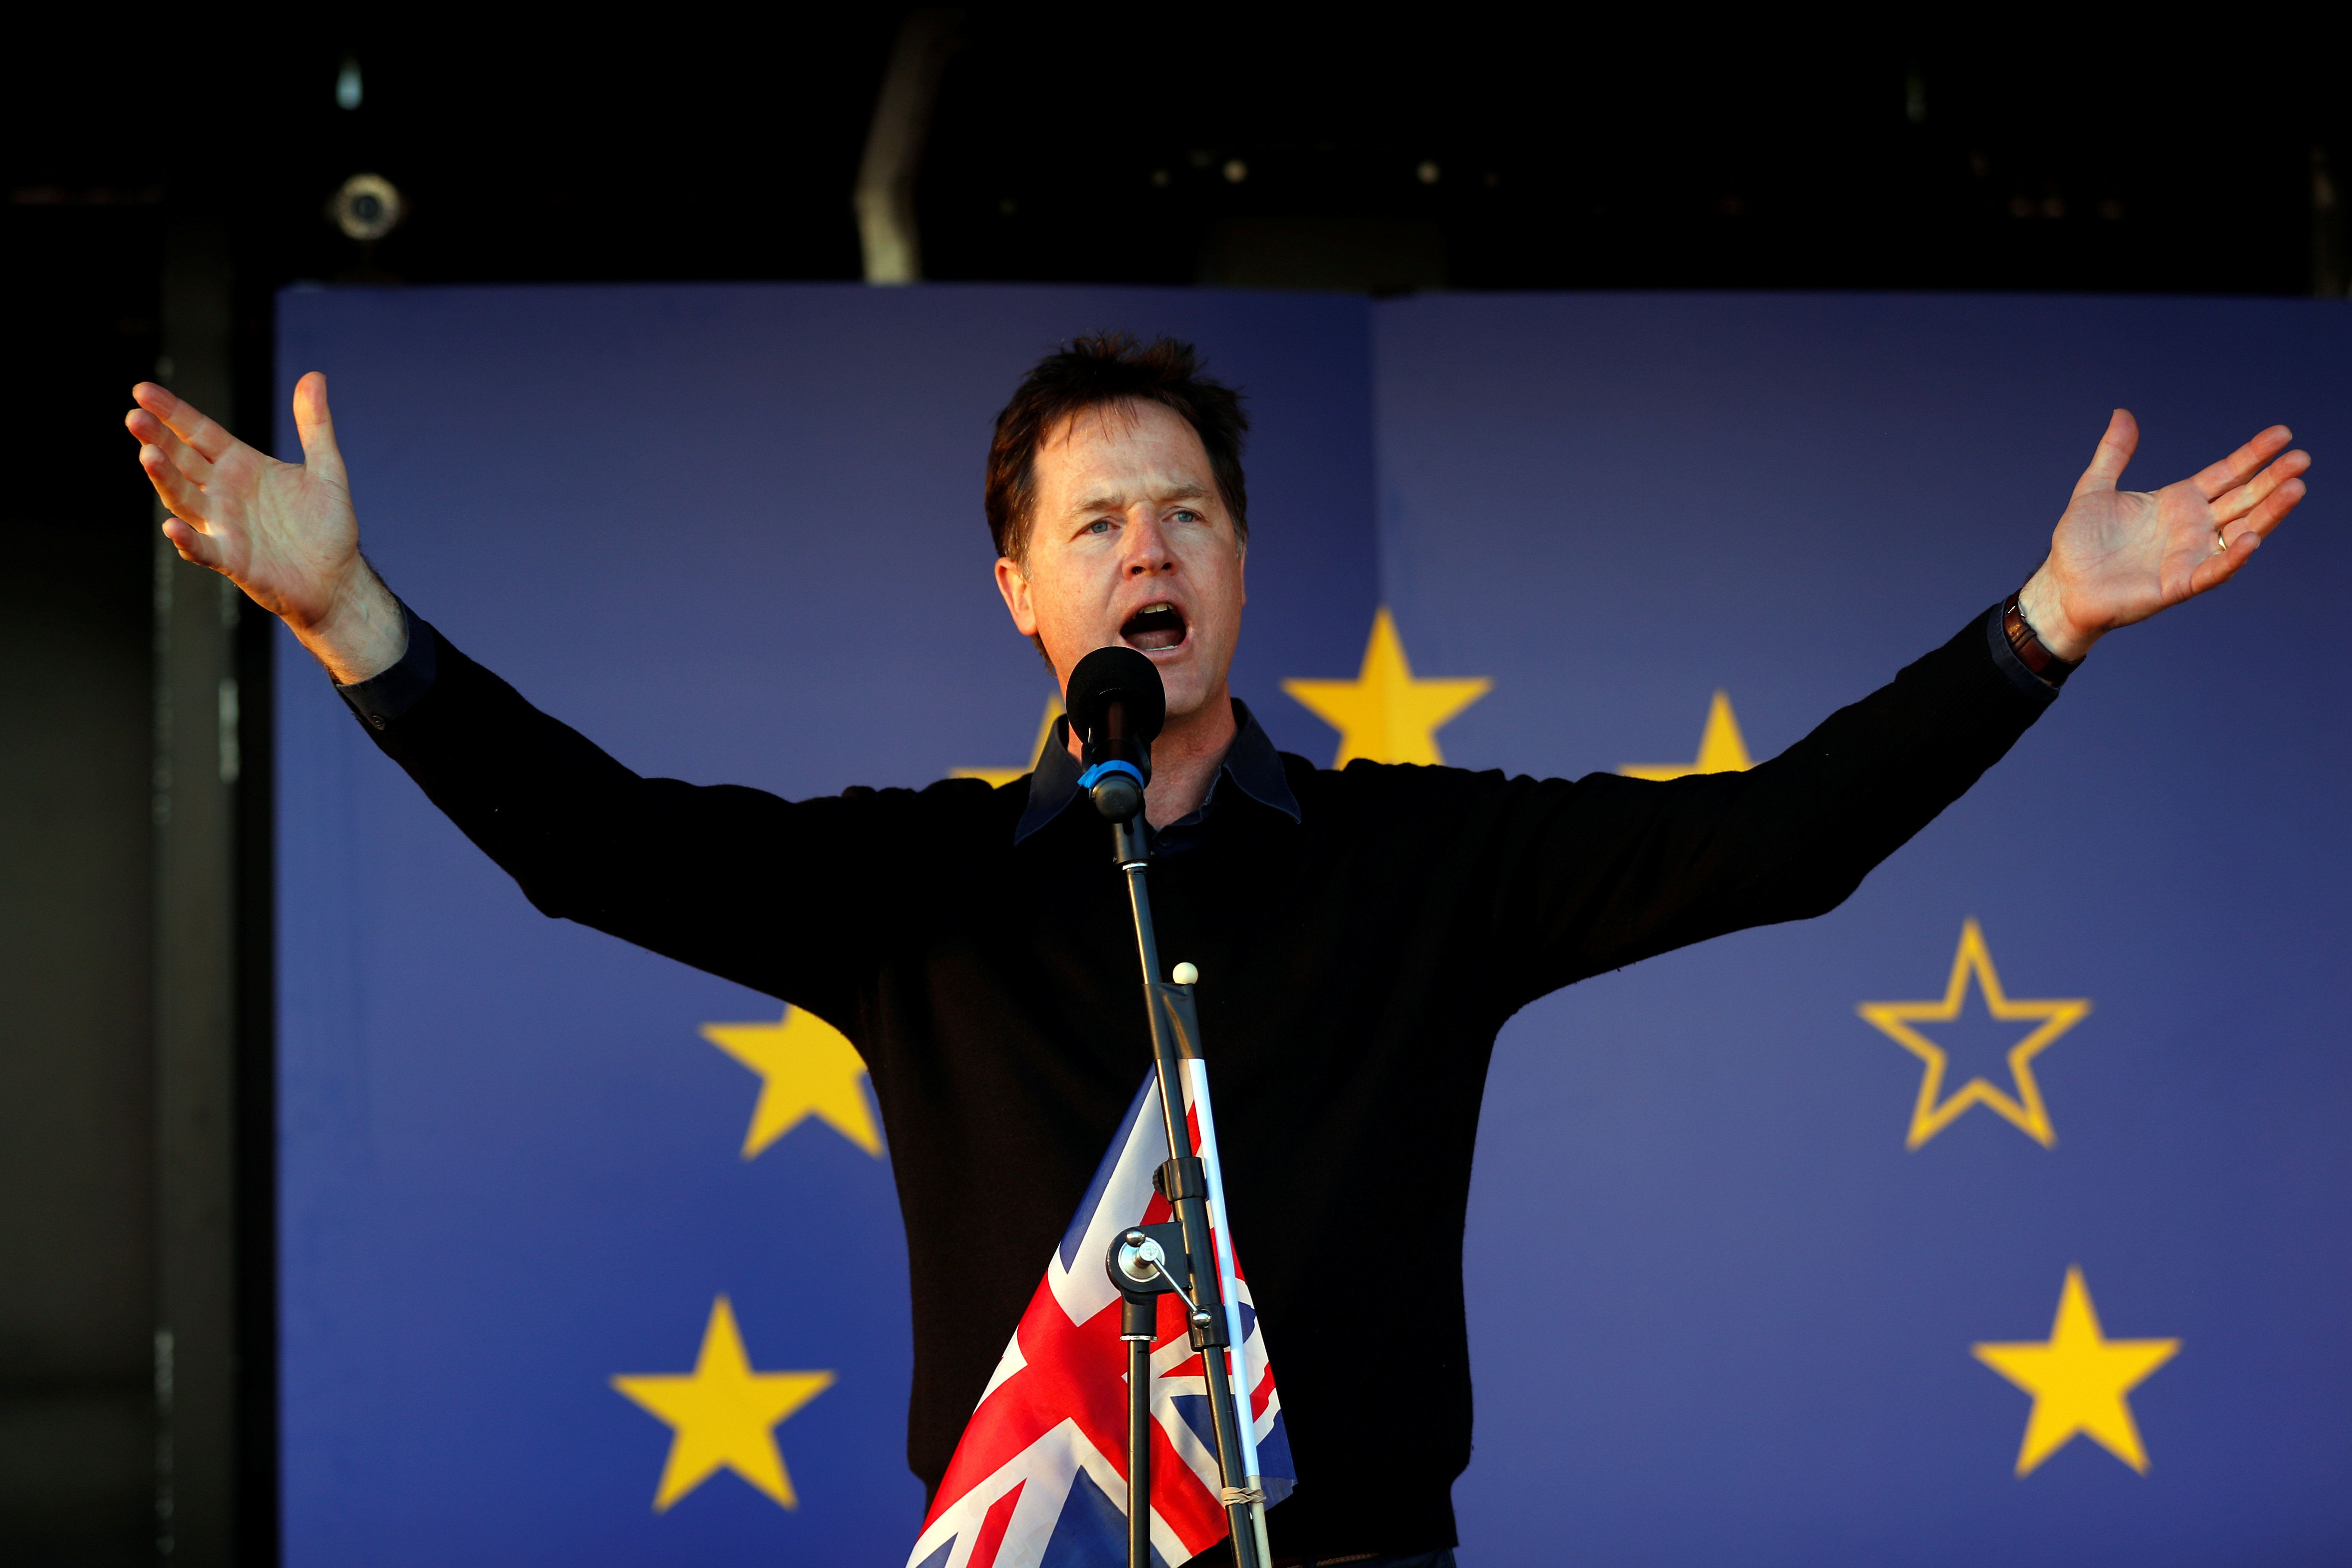 NICK CLEGG: THE WORLD'S MOST POWERFUL BRIT?